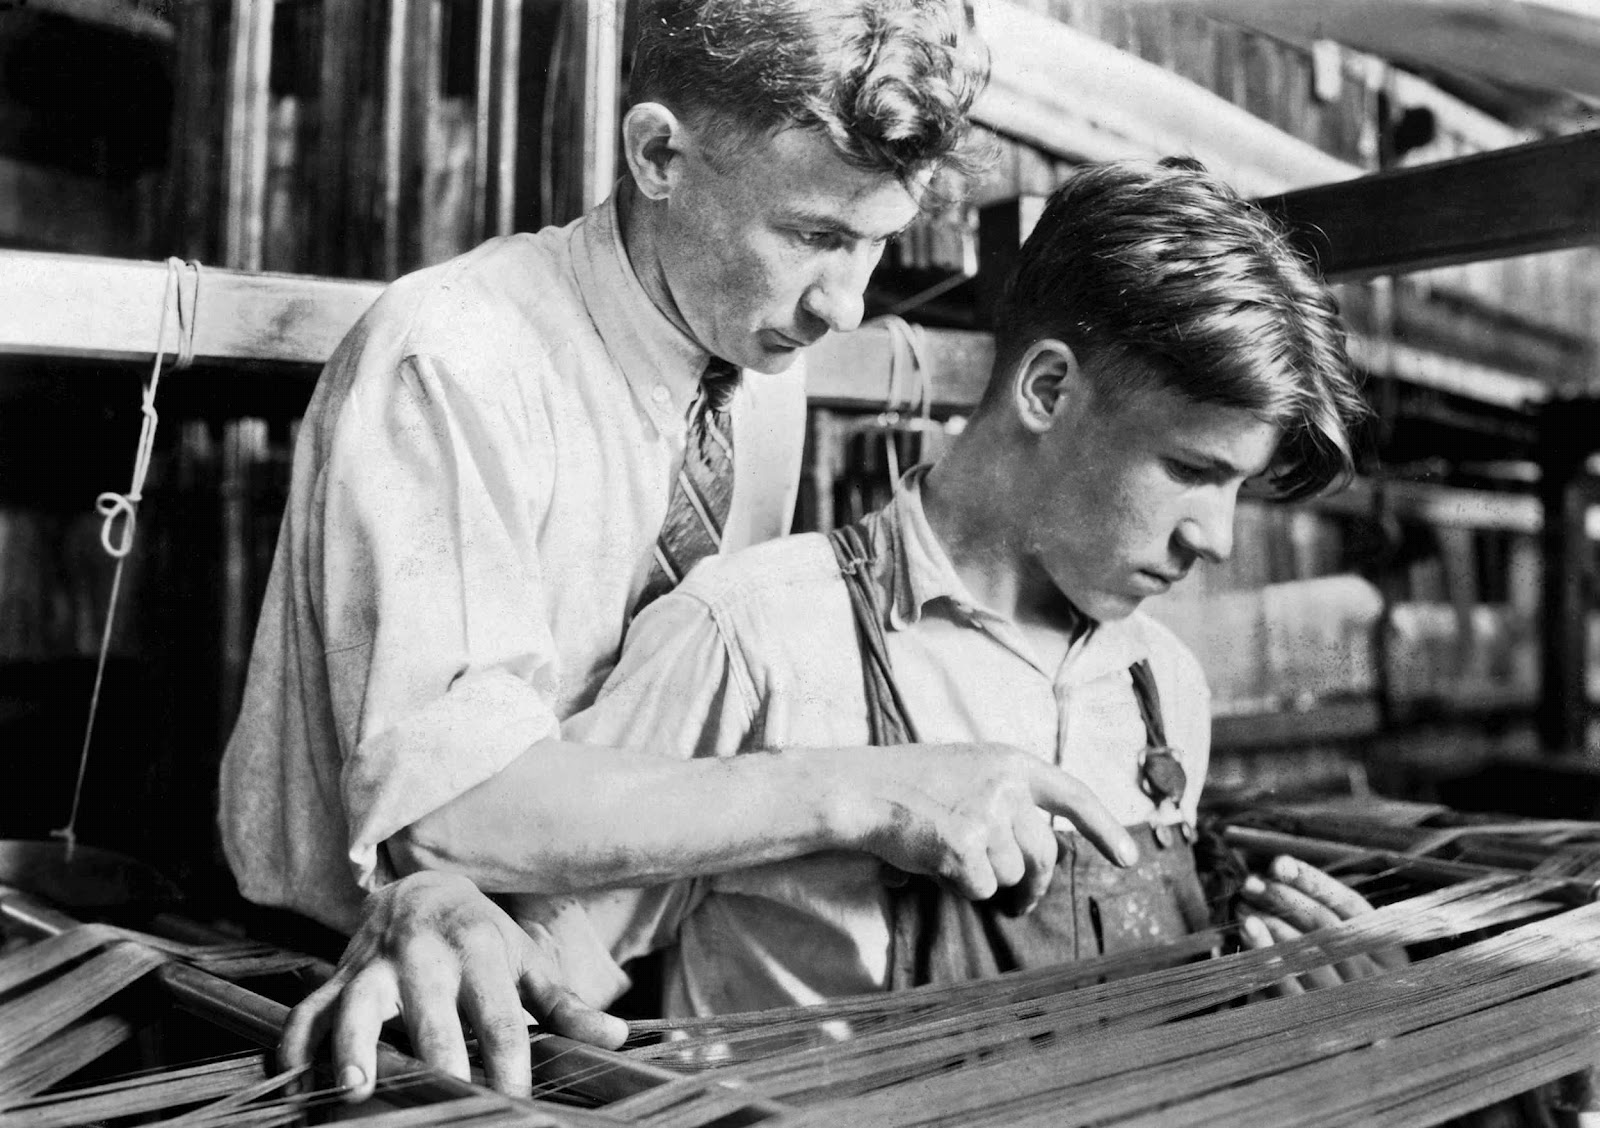 history in photos lewis hine mill workers. Black Bedroom Furniture Sets. Home Design Ideas